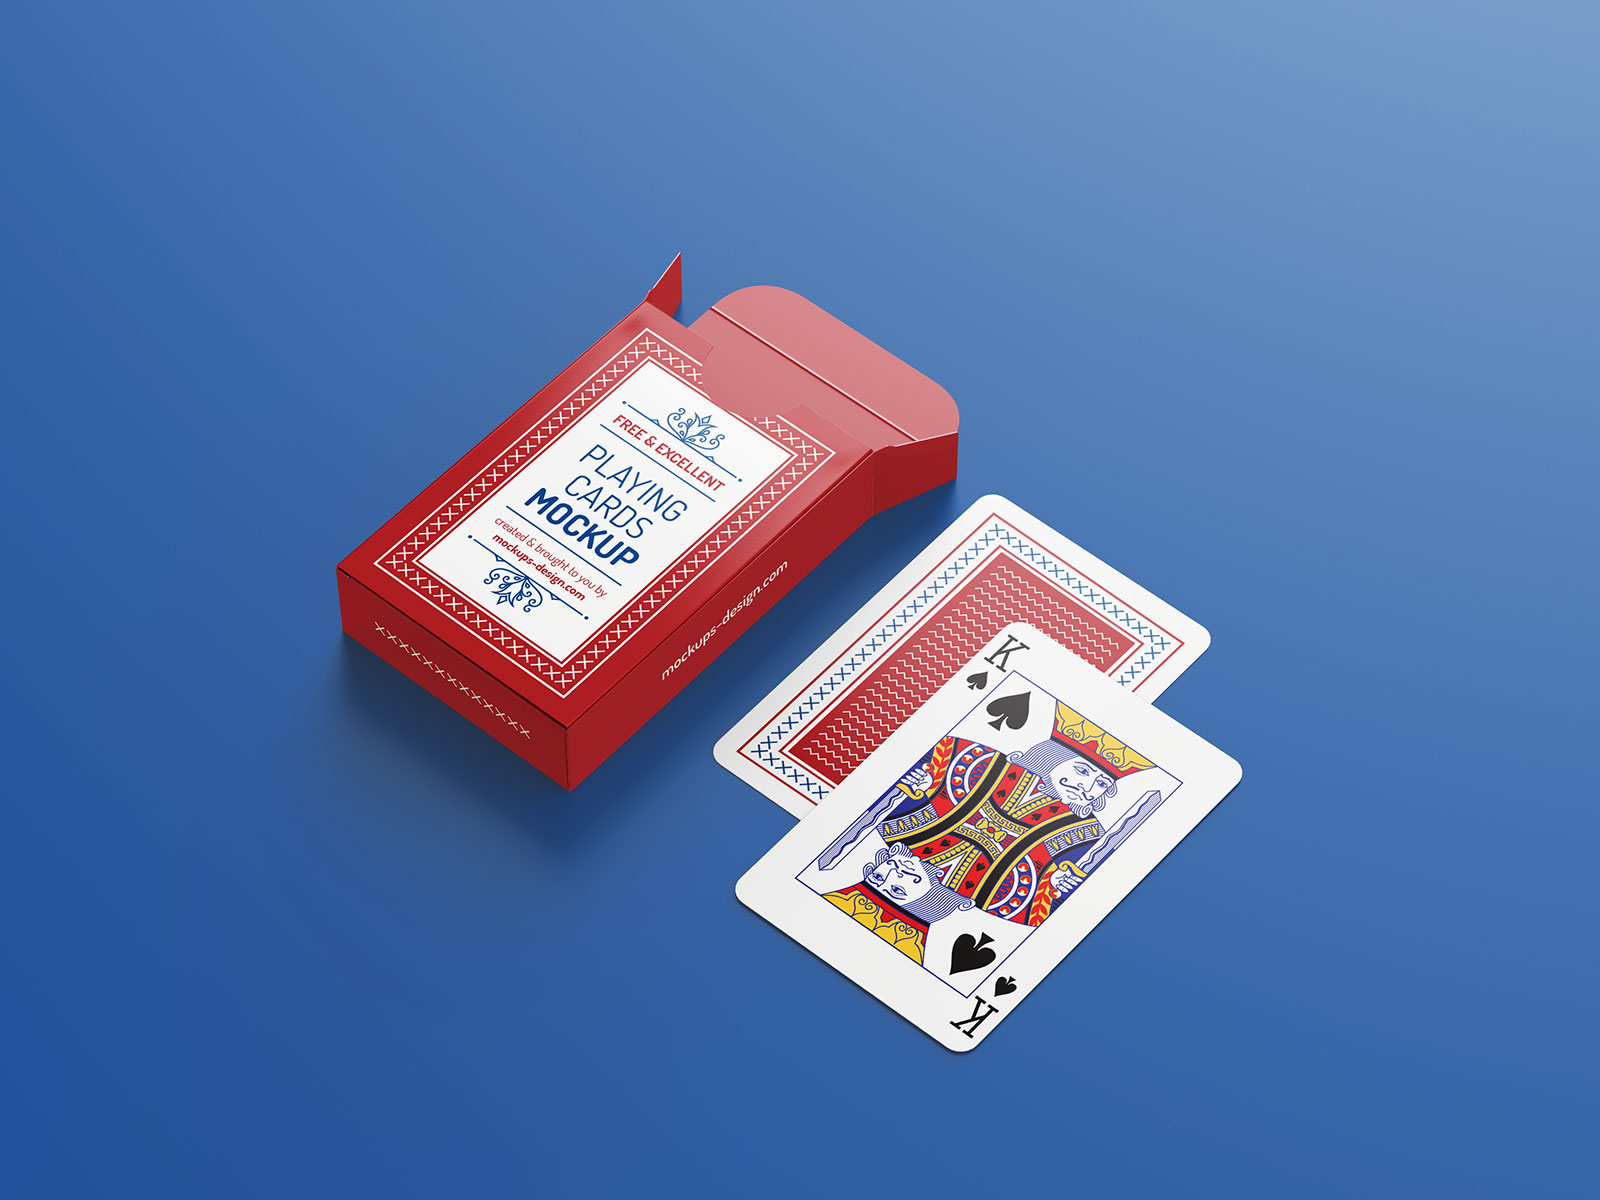 Free Playing Card Deck & Packaging Mockup PSD (1)